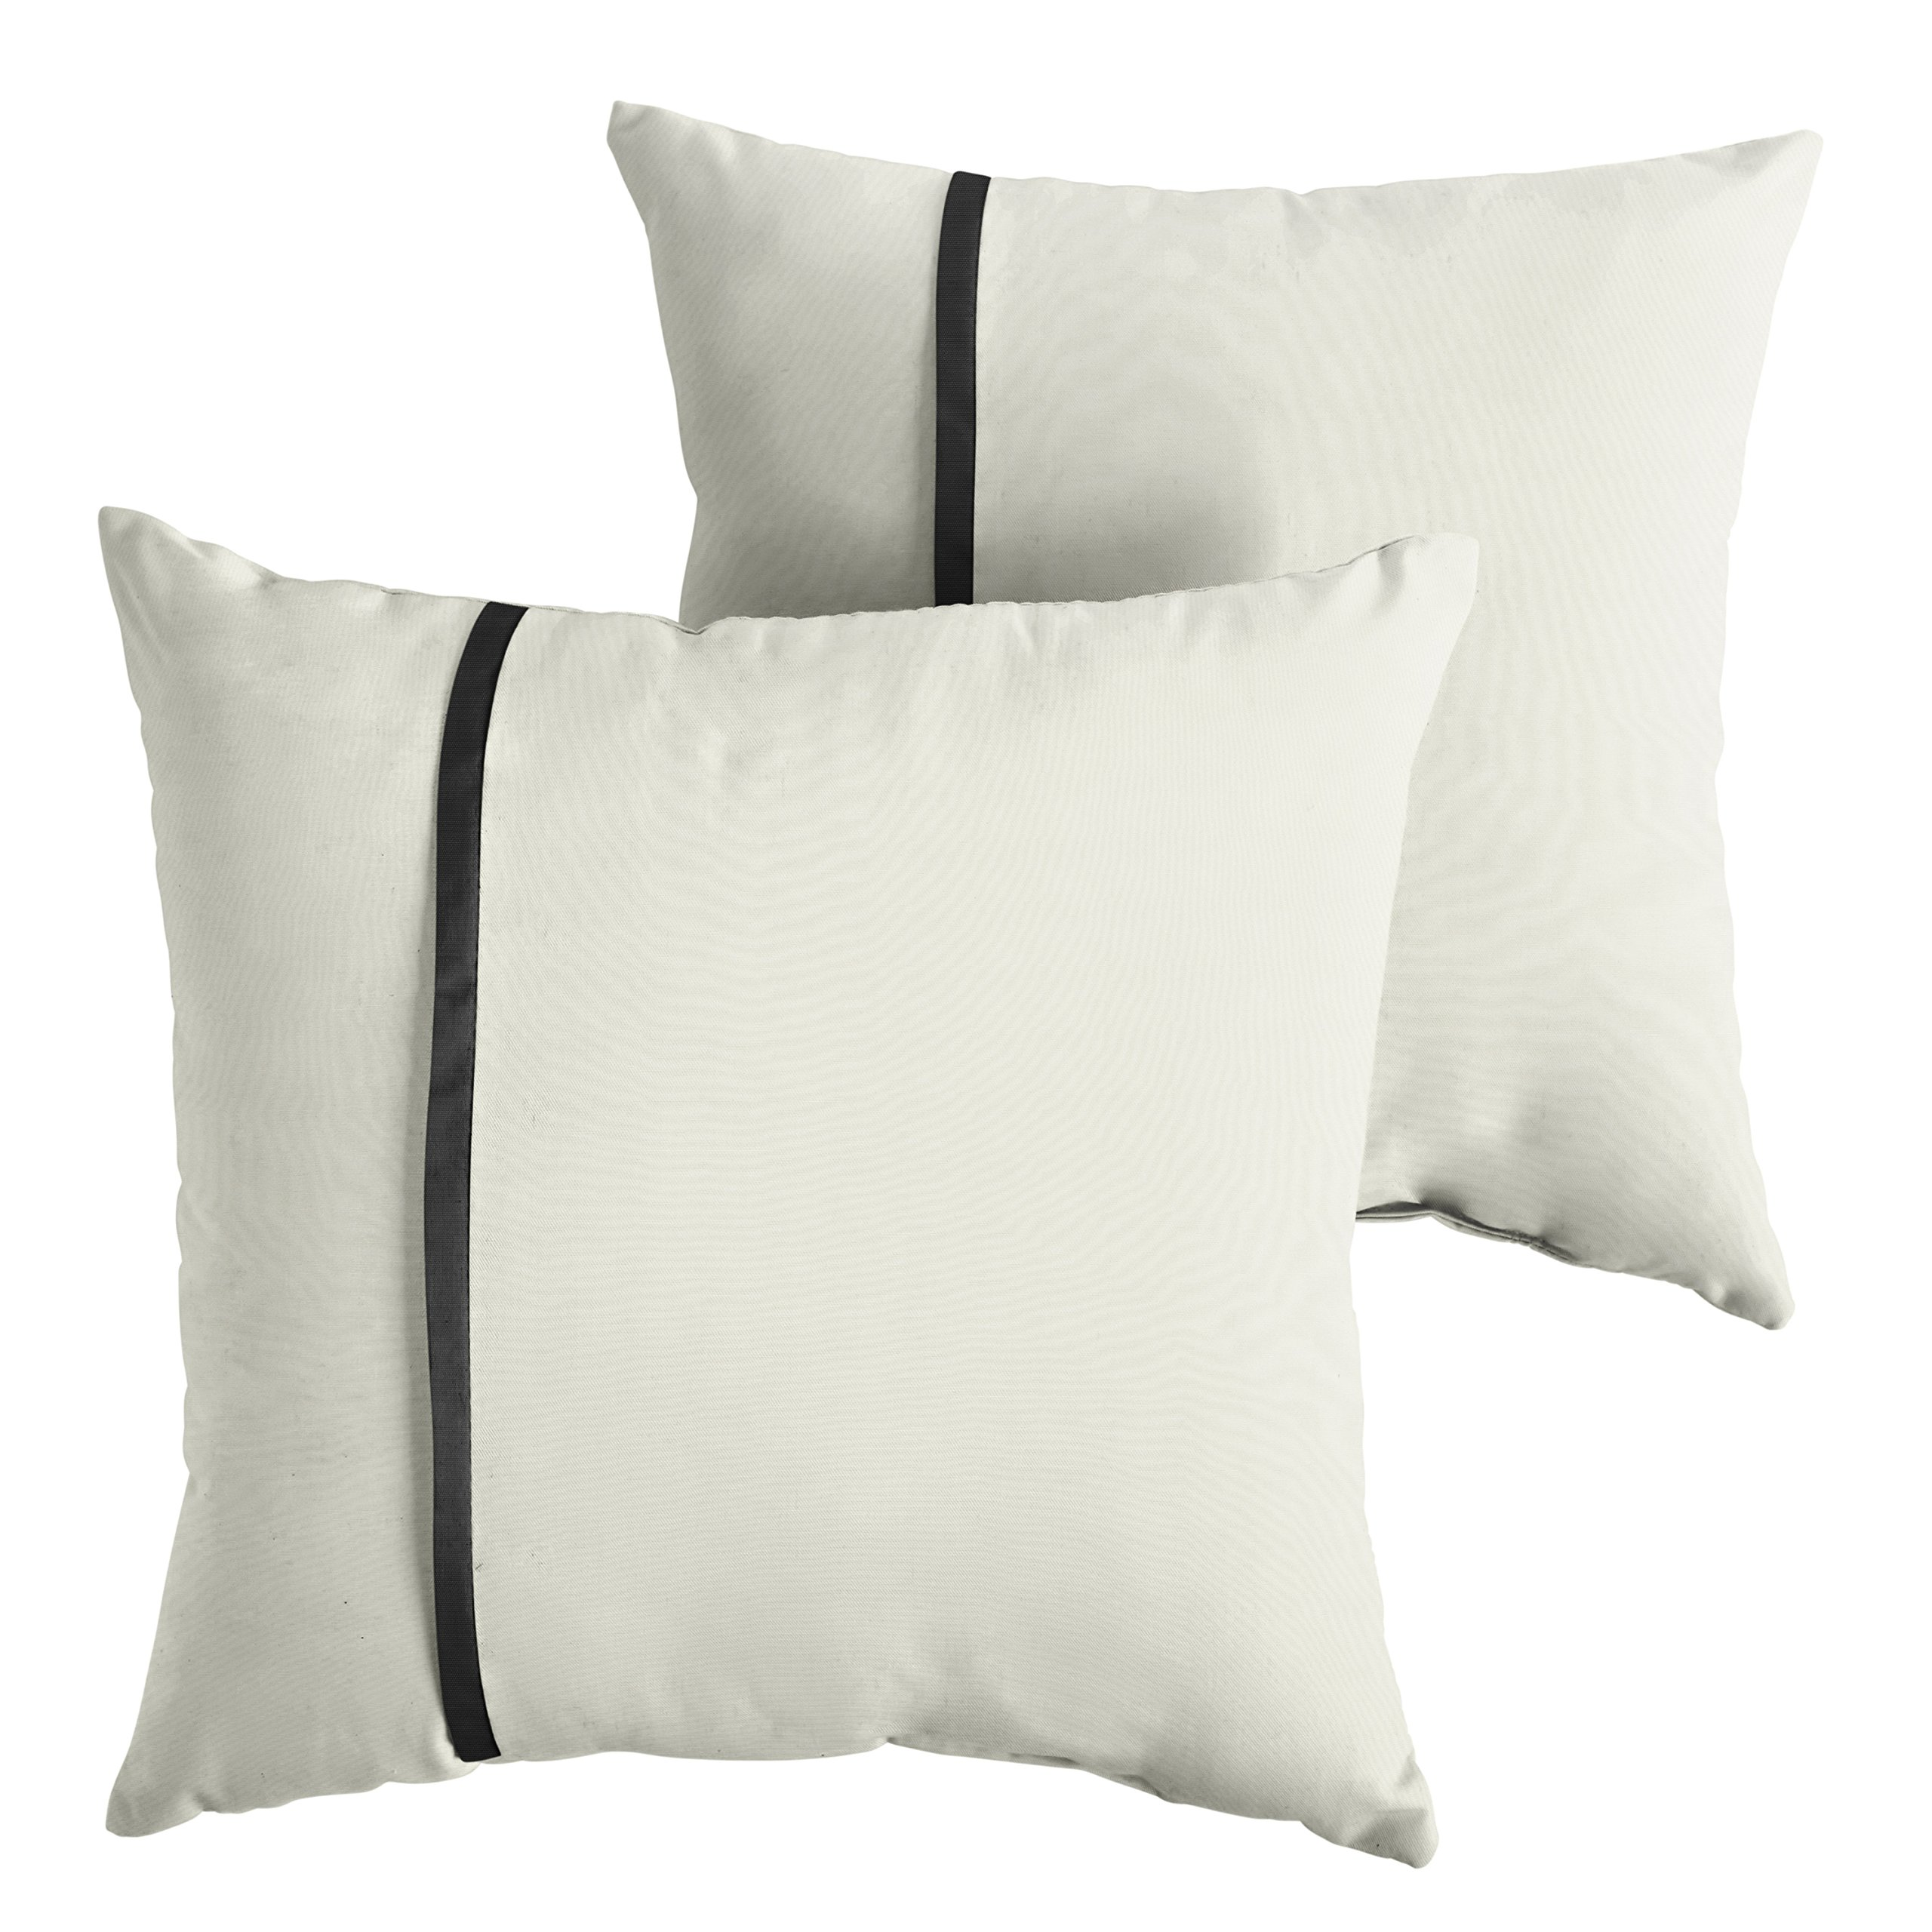 Mozaic Company AMPS114562 Indoor Outdoor Sunbrella Square Pillows, Set of 2, 16x16, Canvas Natural Ivory & Canvas Black